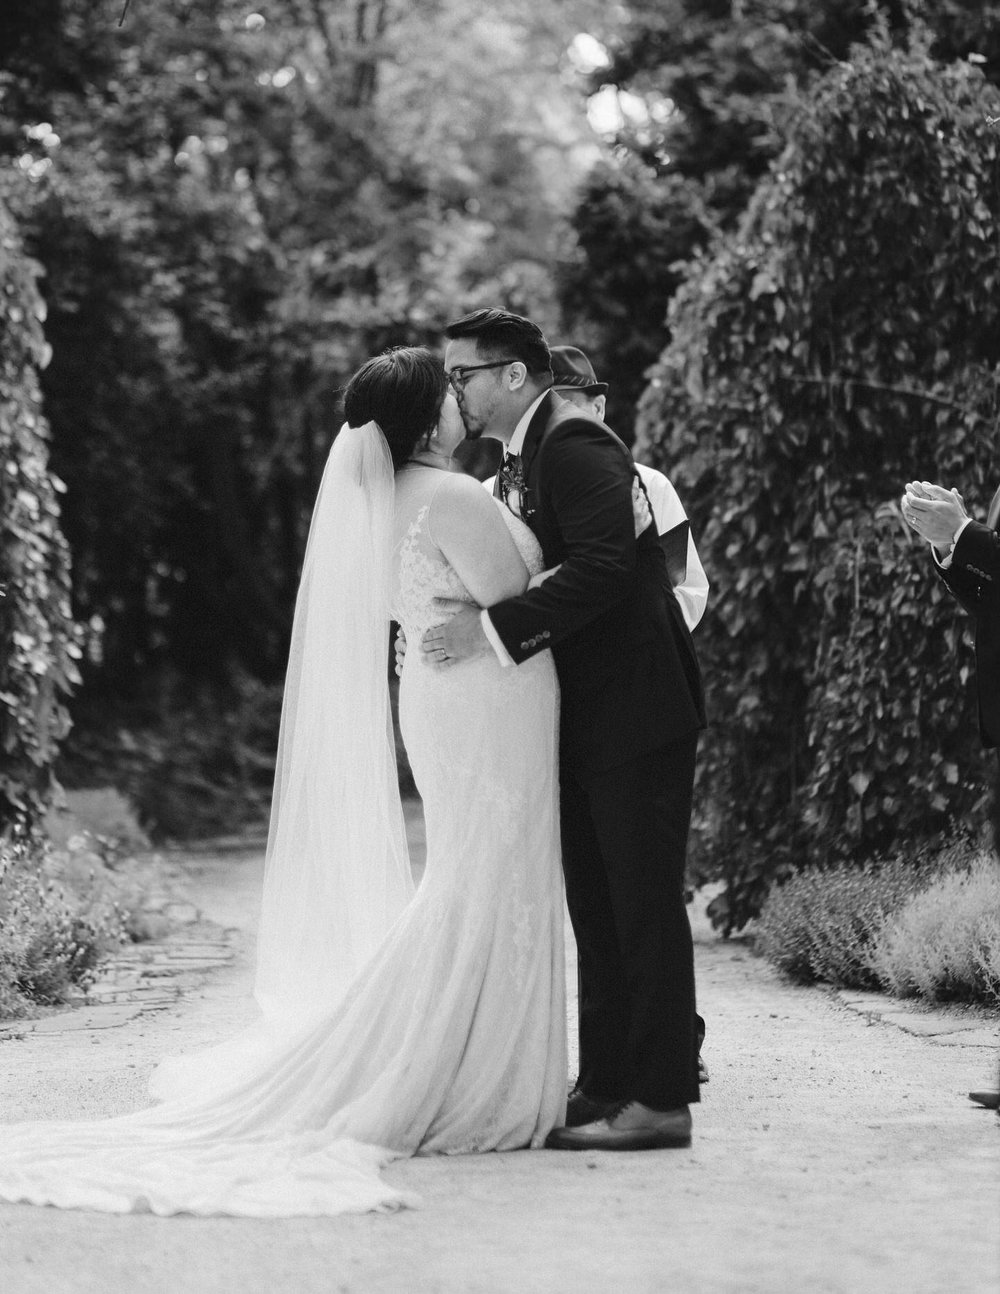 Campovida-wedding-32.jpg